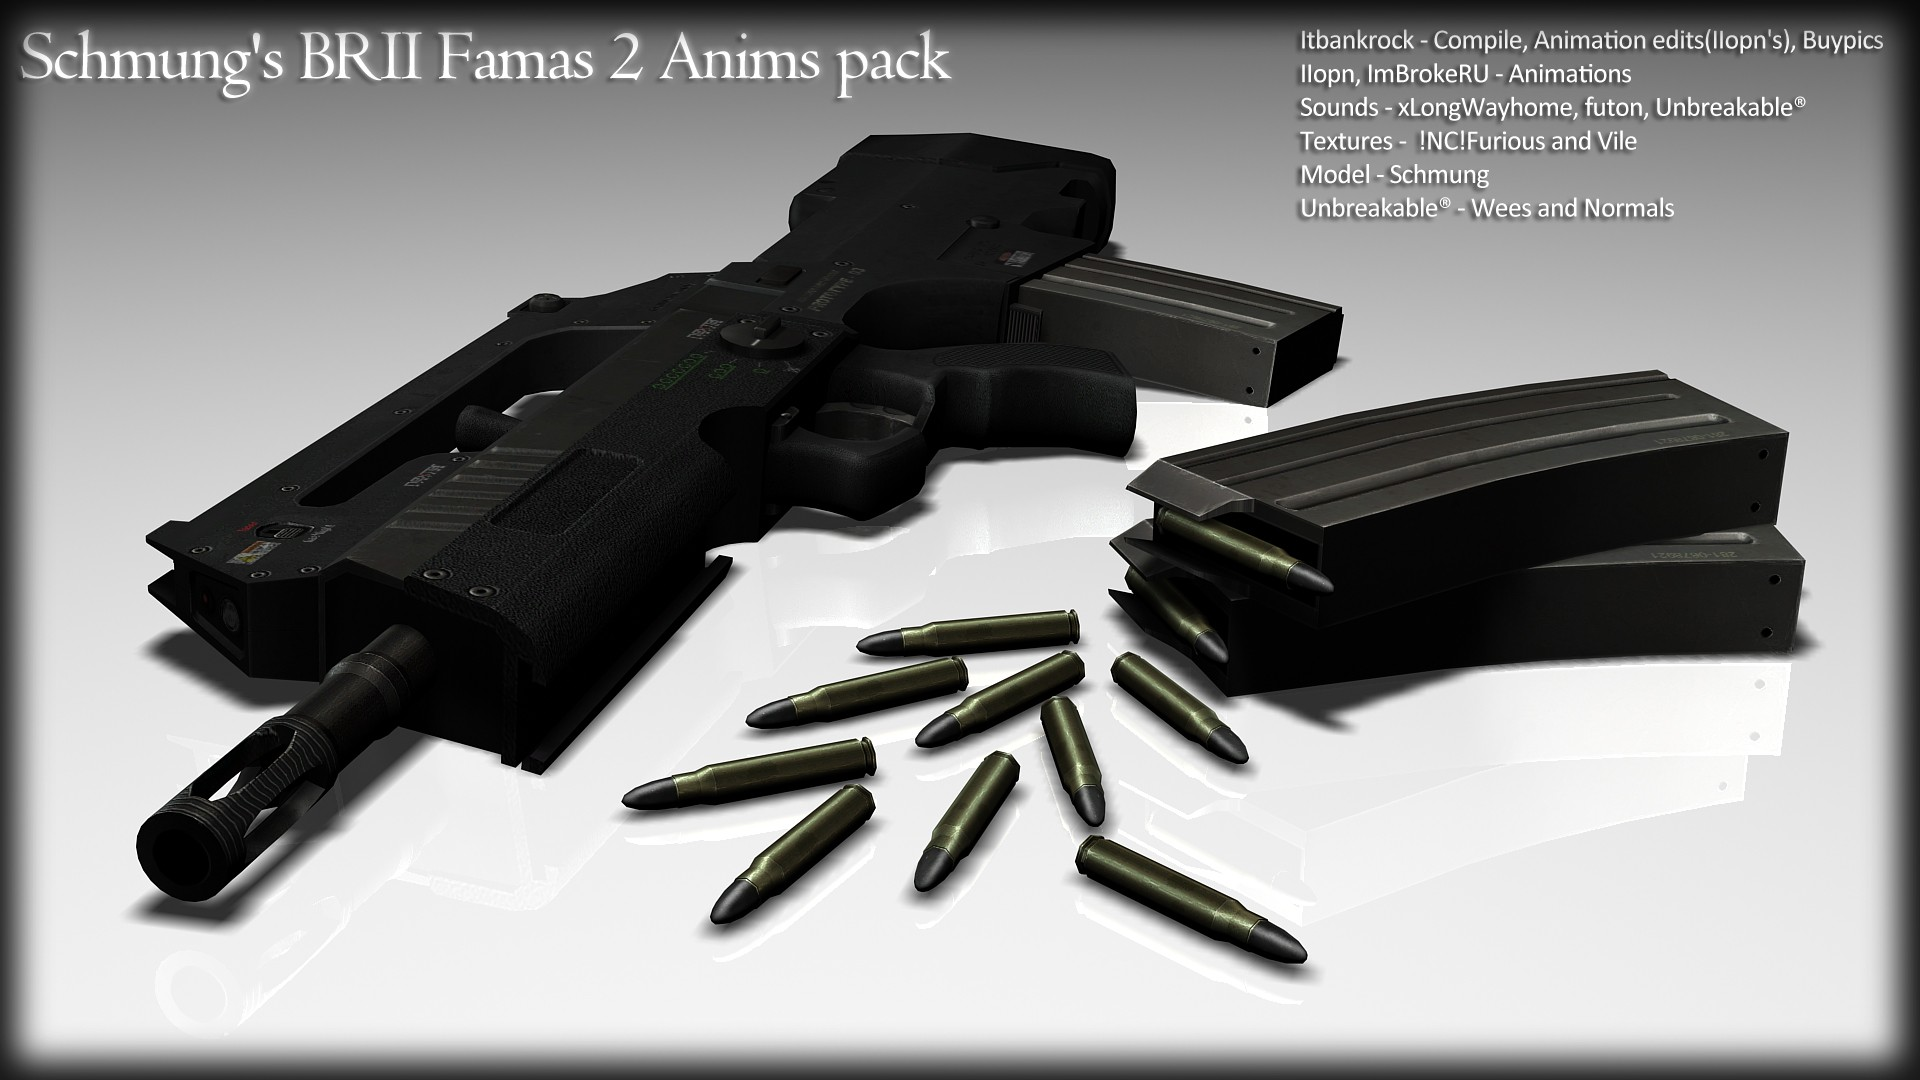 Schmung's BRII Famas 2 Anims pack